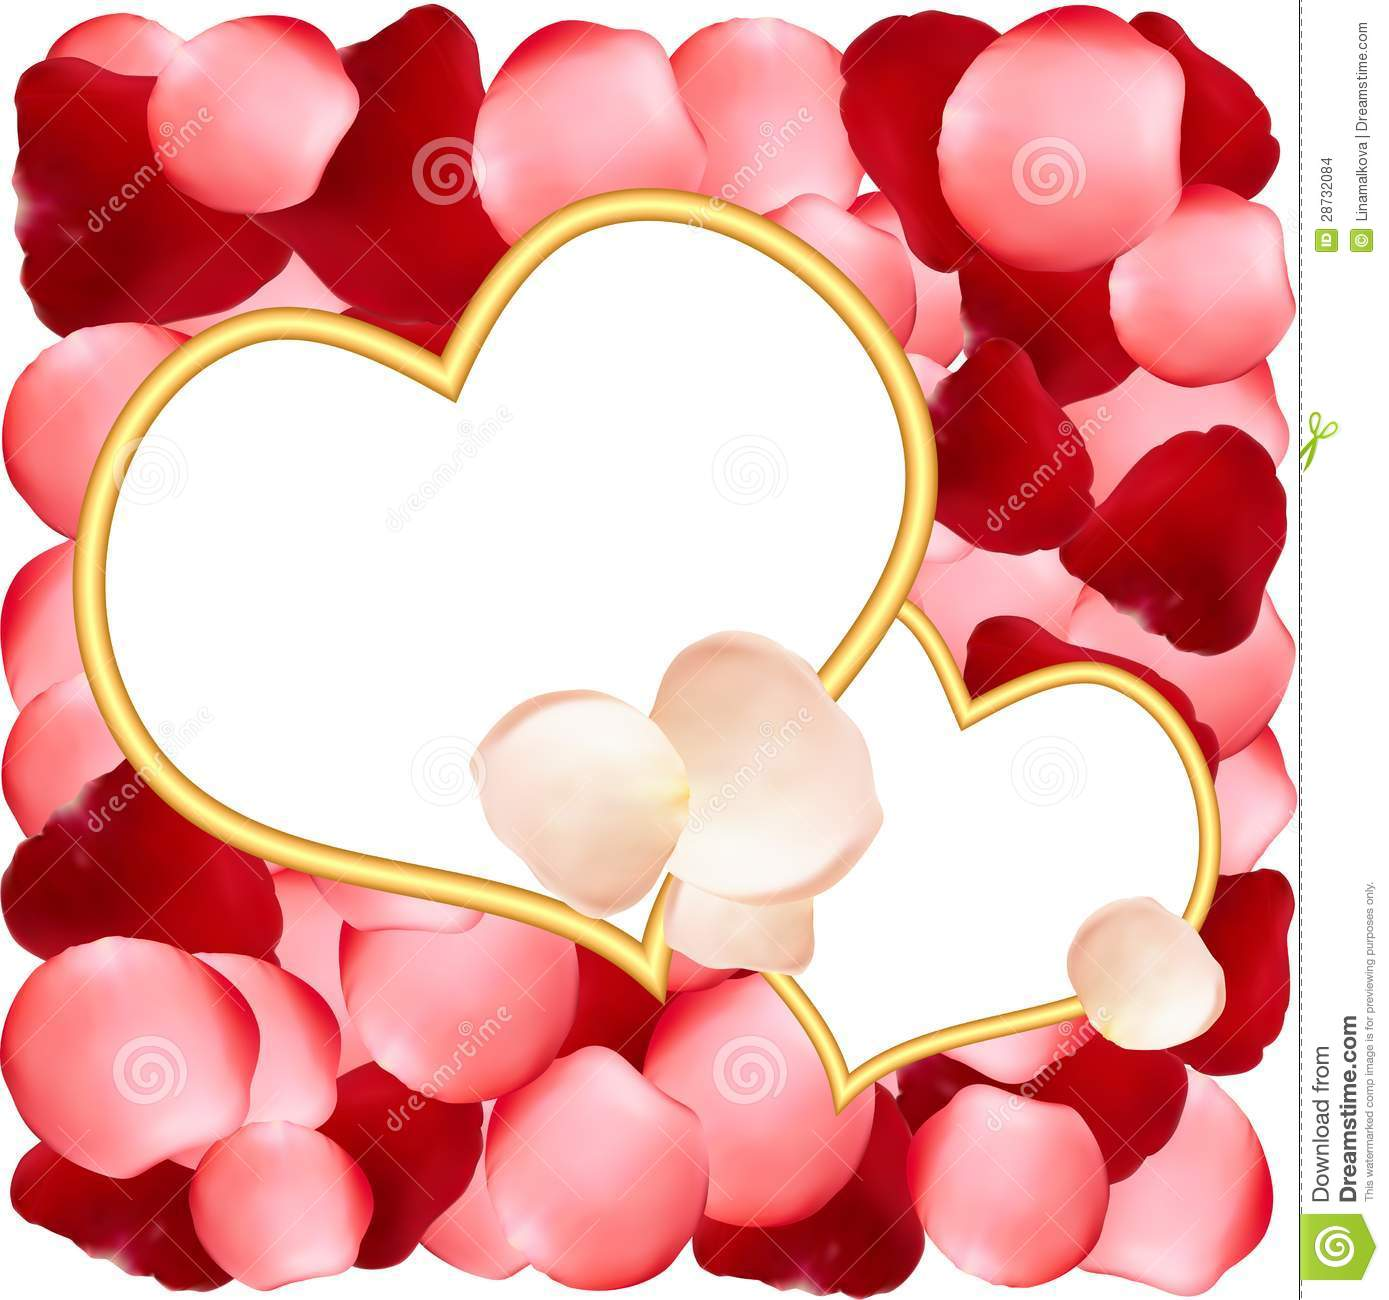 heart shaped frames on background of rose petals stock images